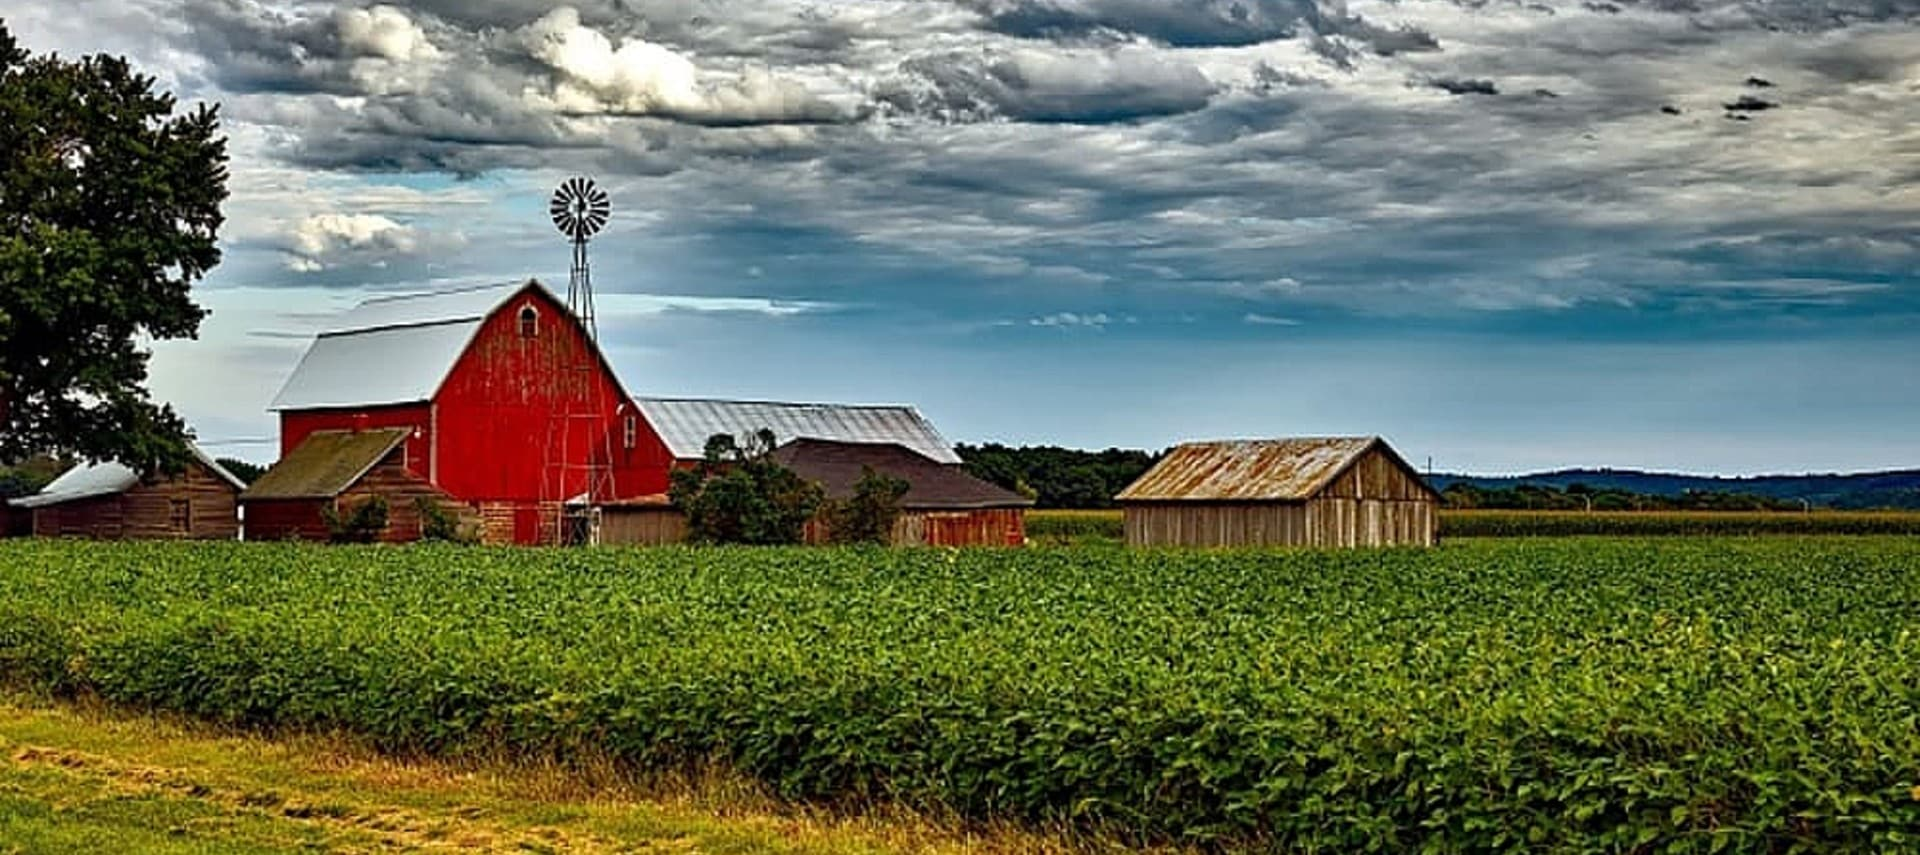 Serene farm setting showing a large red barn next to several smaller brown buildings in a green crop.